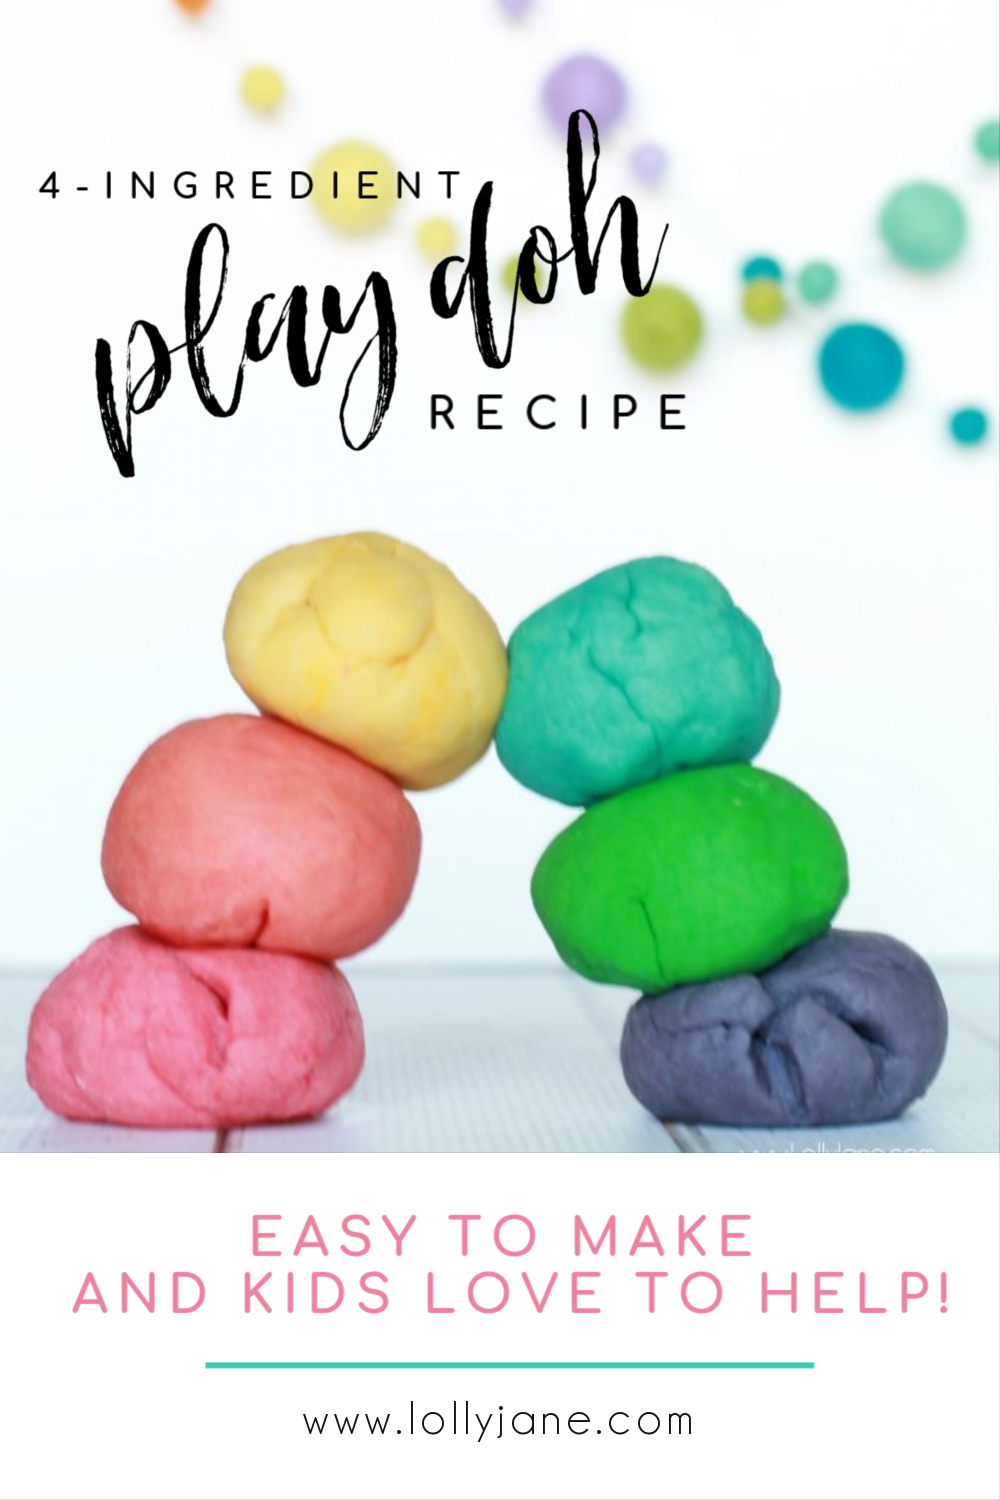 Only 4 Ingredients to make this EASY Play Doh recipe that kids LOVE to help make! #diy #kidscraft #kidscrafts #playdohrecipe #playdoughrecipe #playdoh #playdough #boredombuster